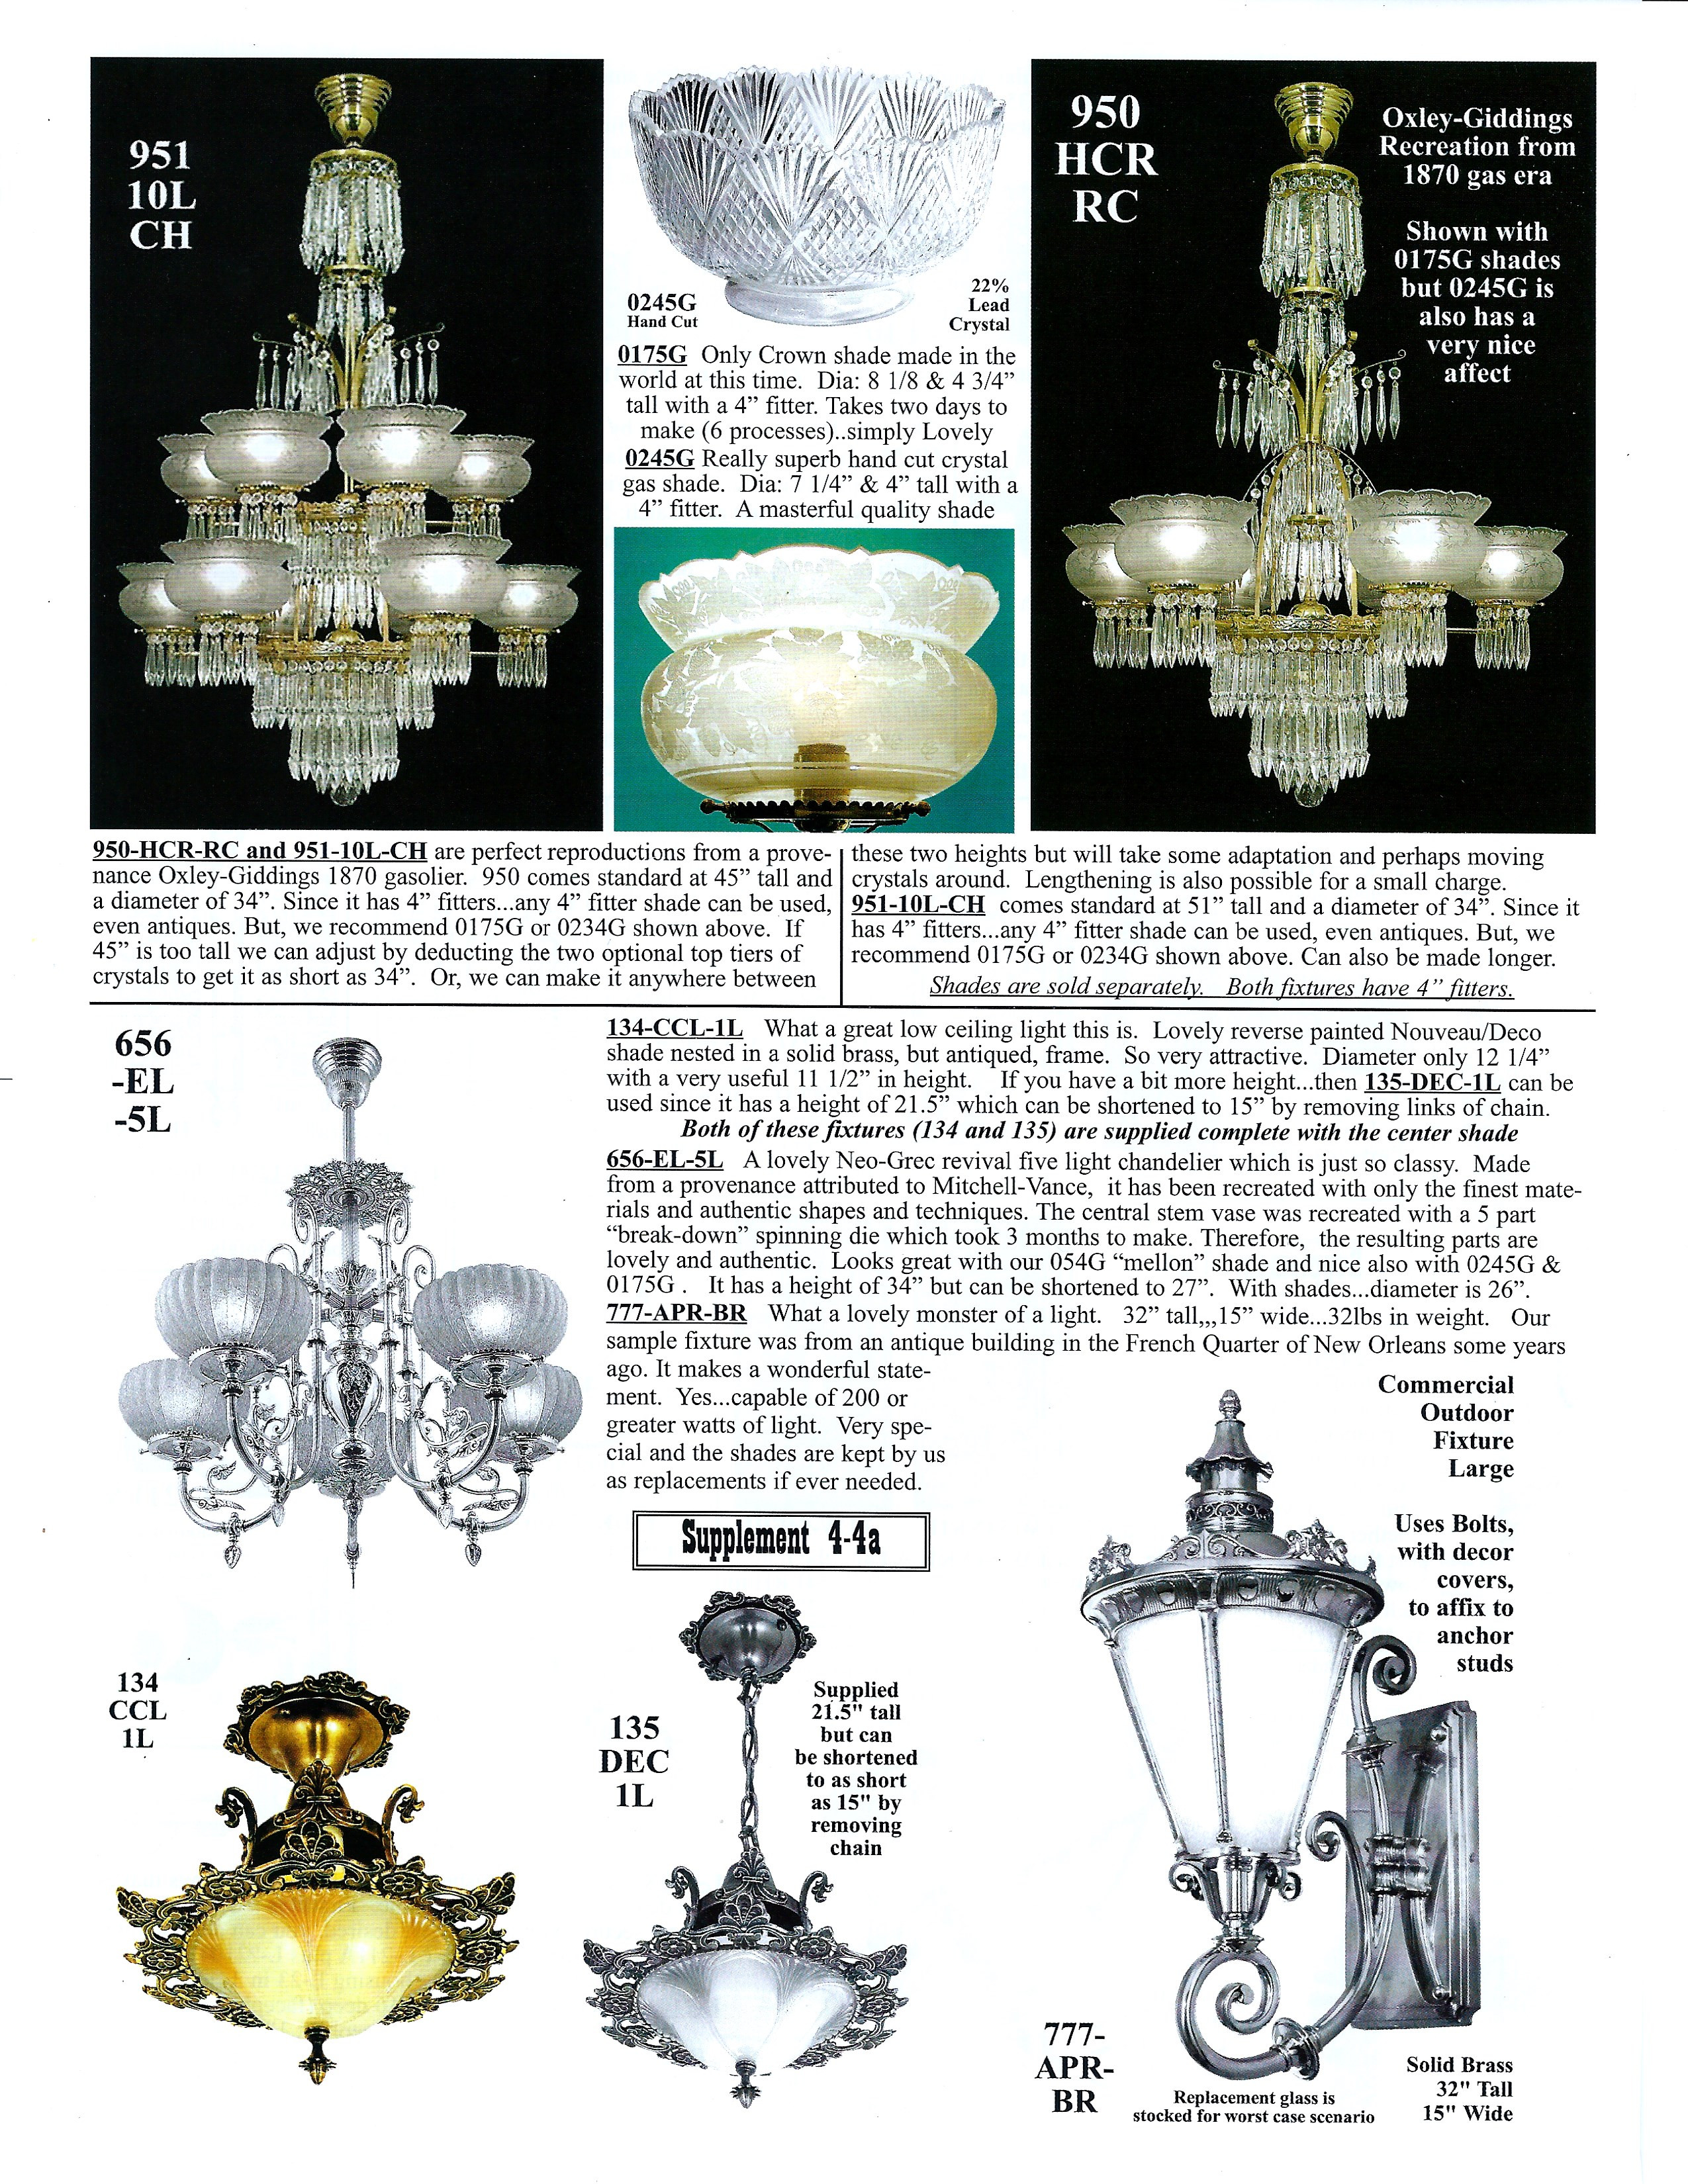 Catalog page 54